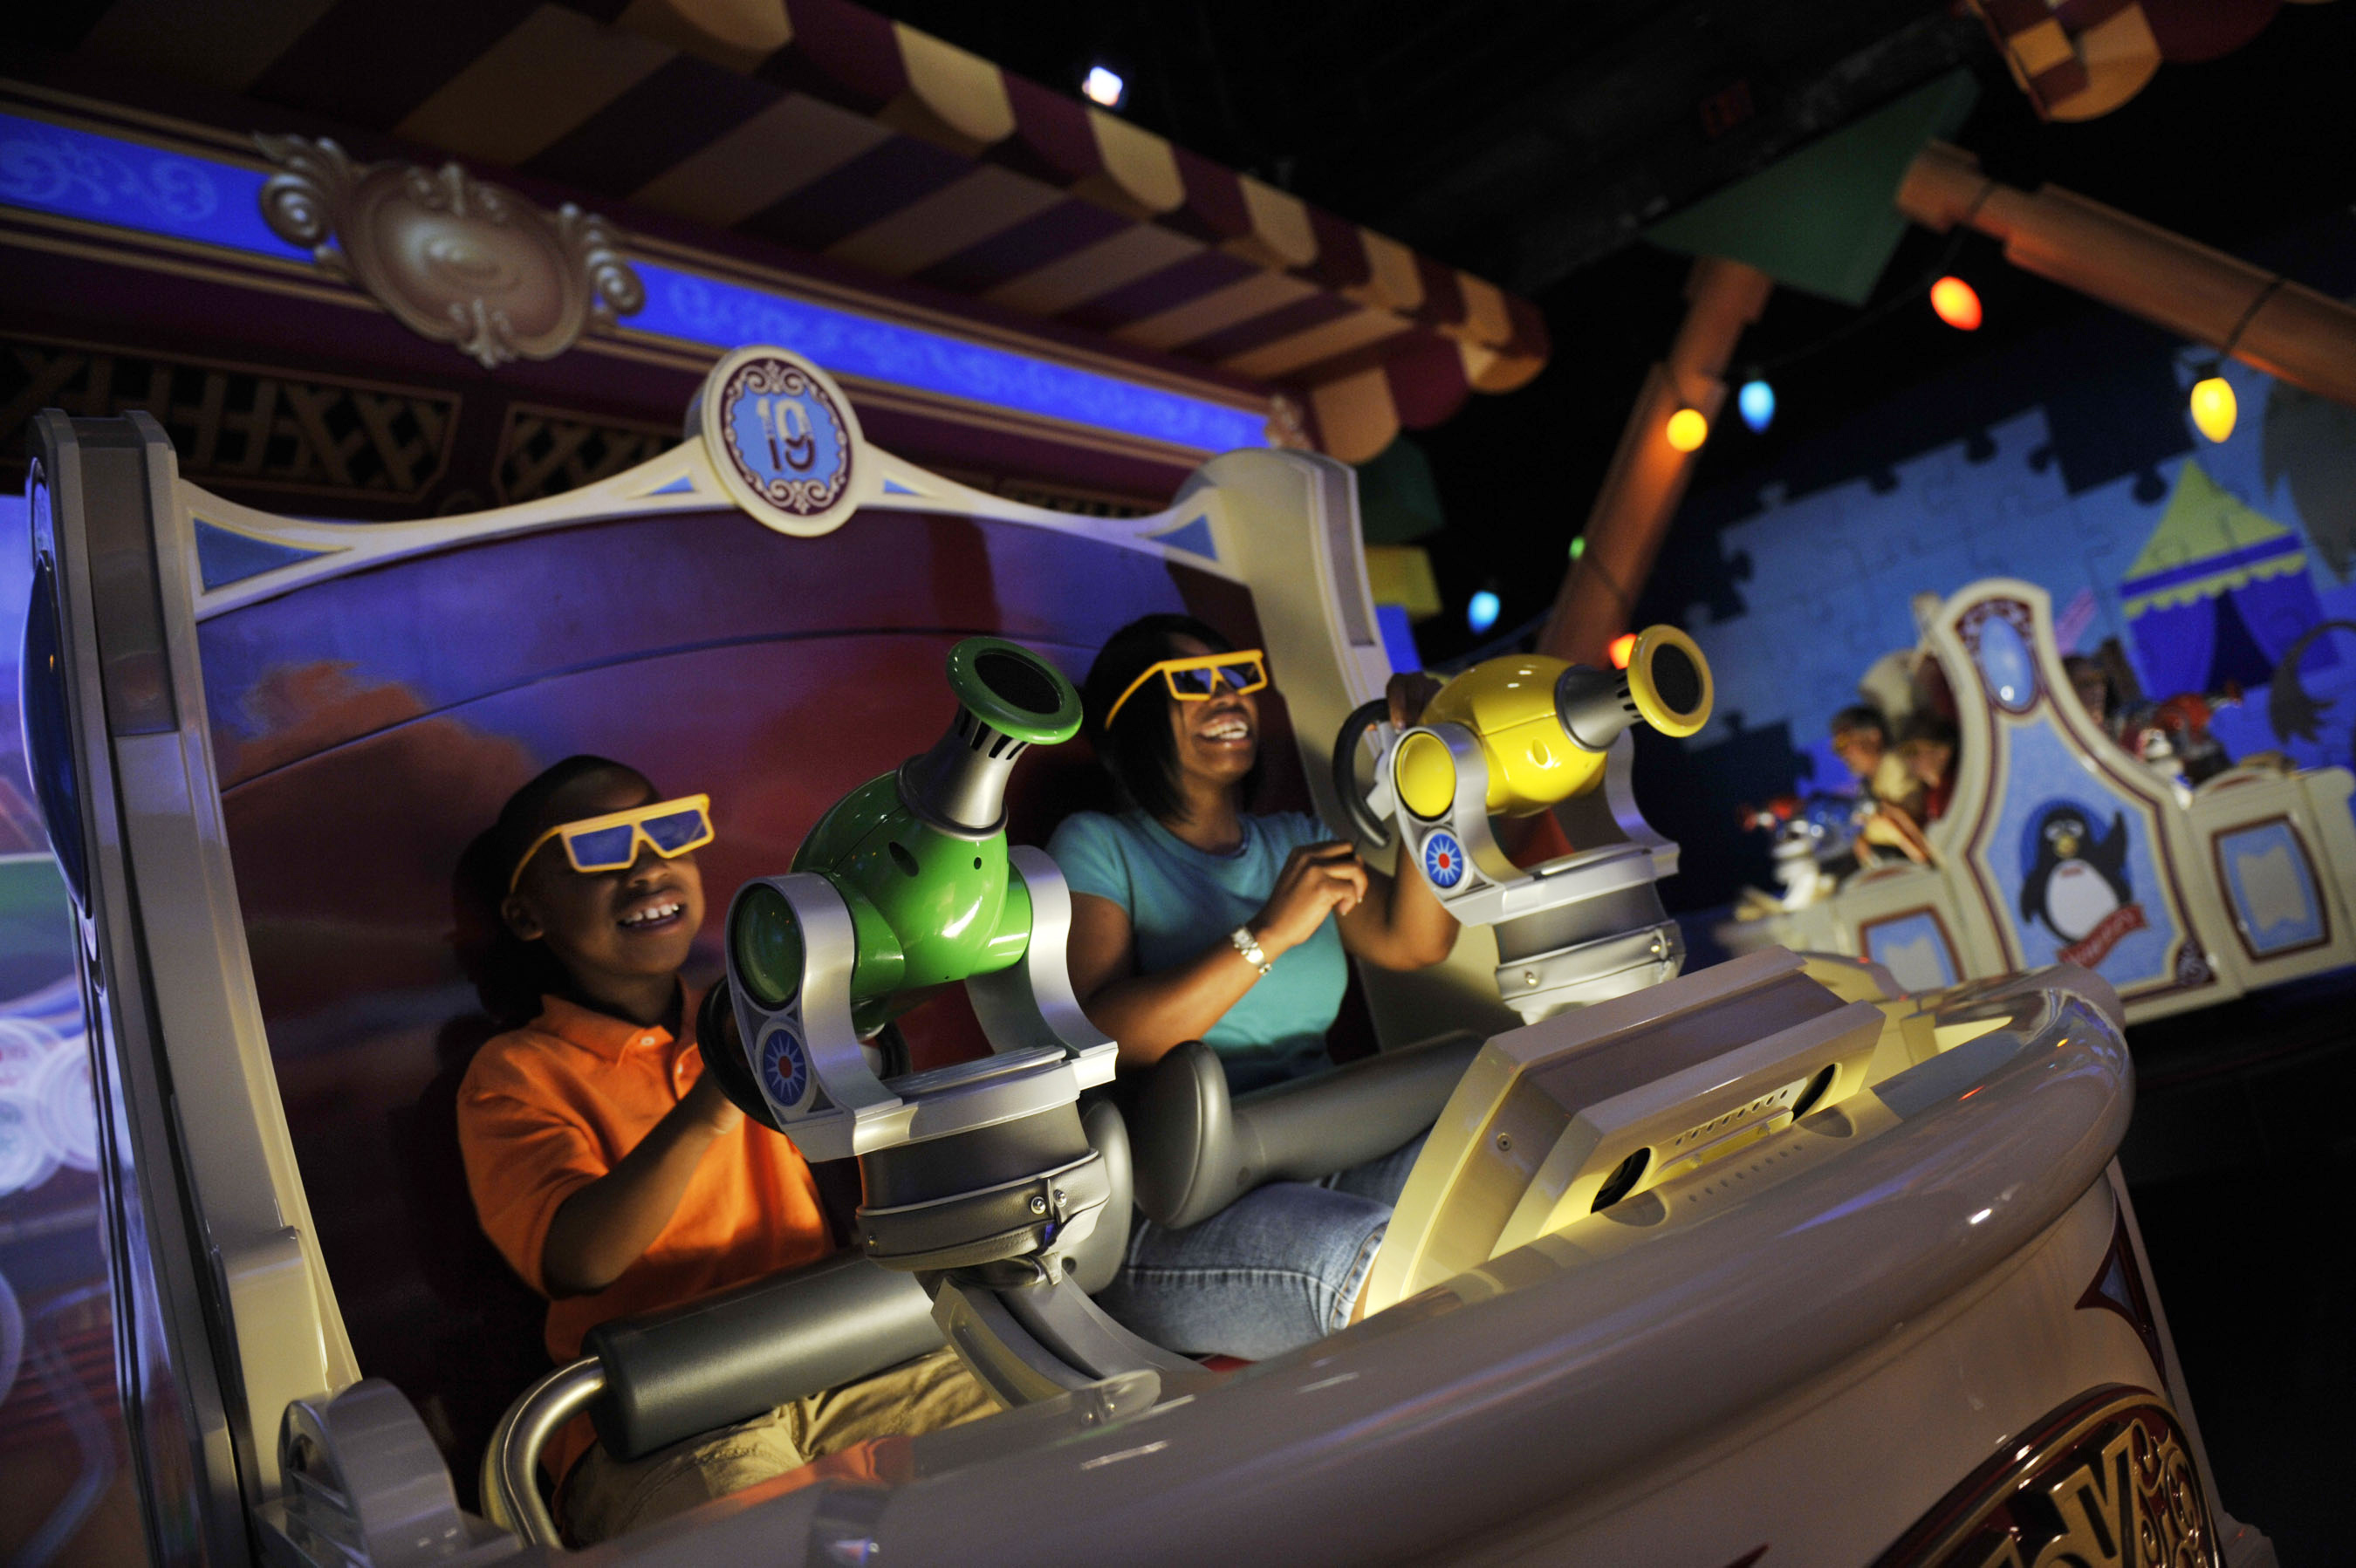 Doc mcstuffins meet and greet coming to walt disney world theme changes coming to soarin at epcot and toy story midway mania at disneys hollywood studios kristyandbryce Images